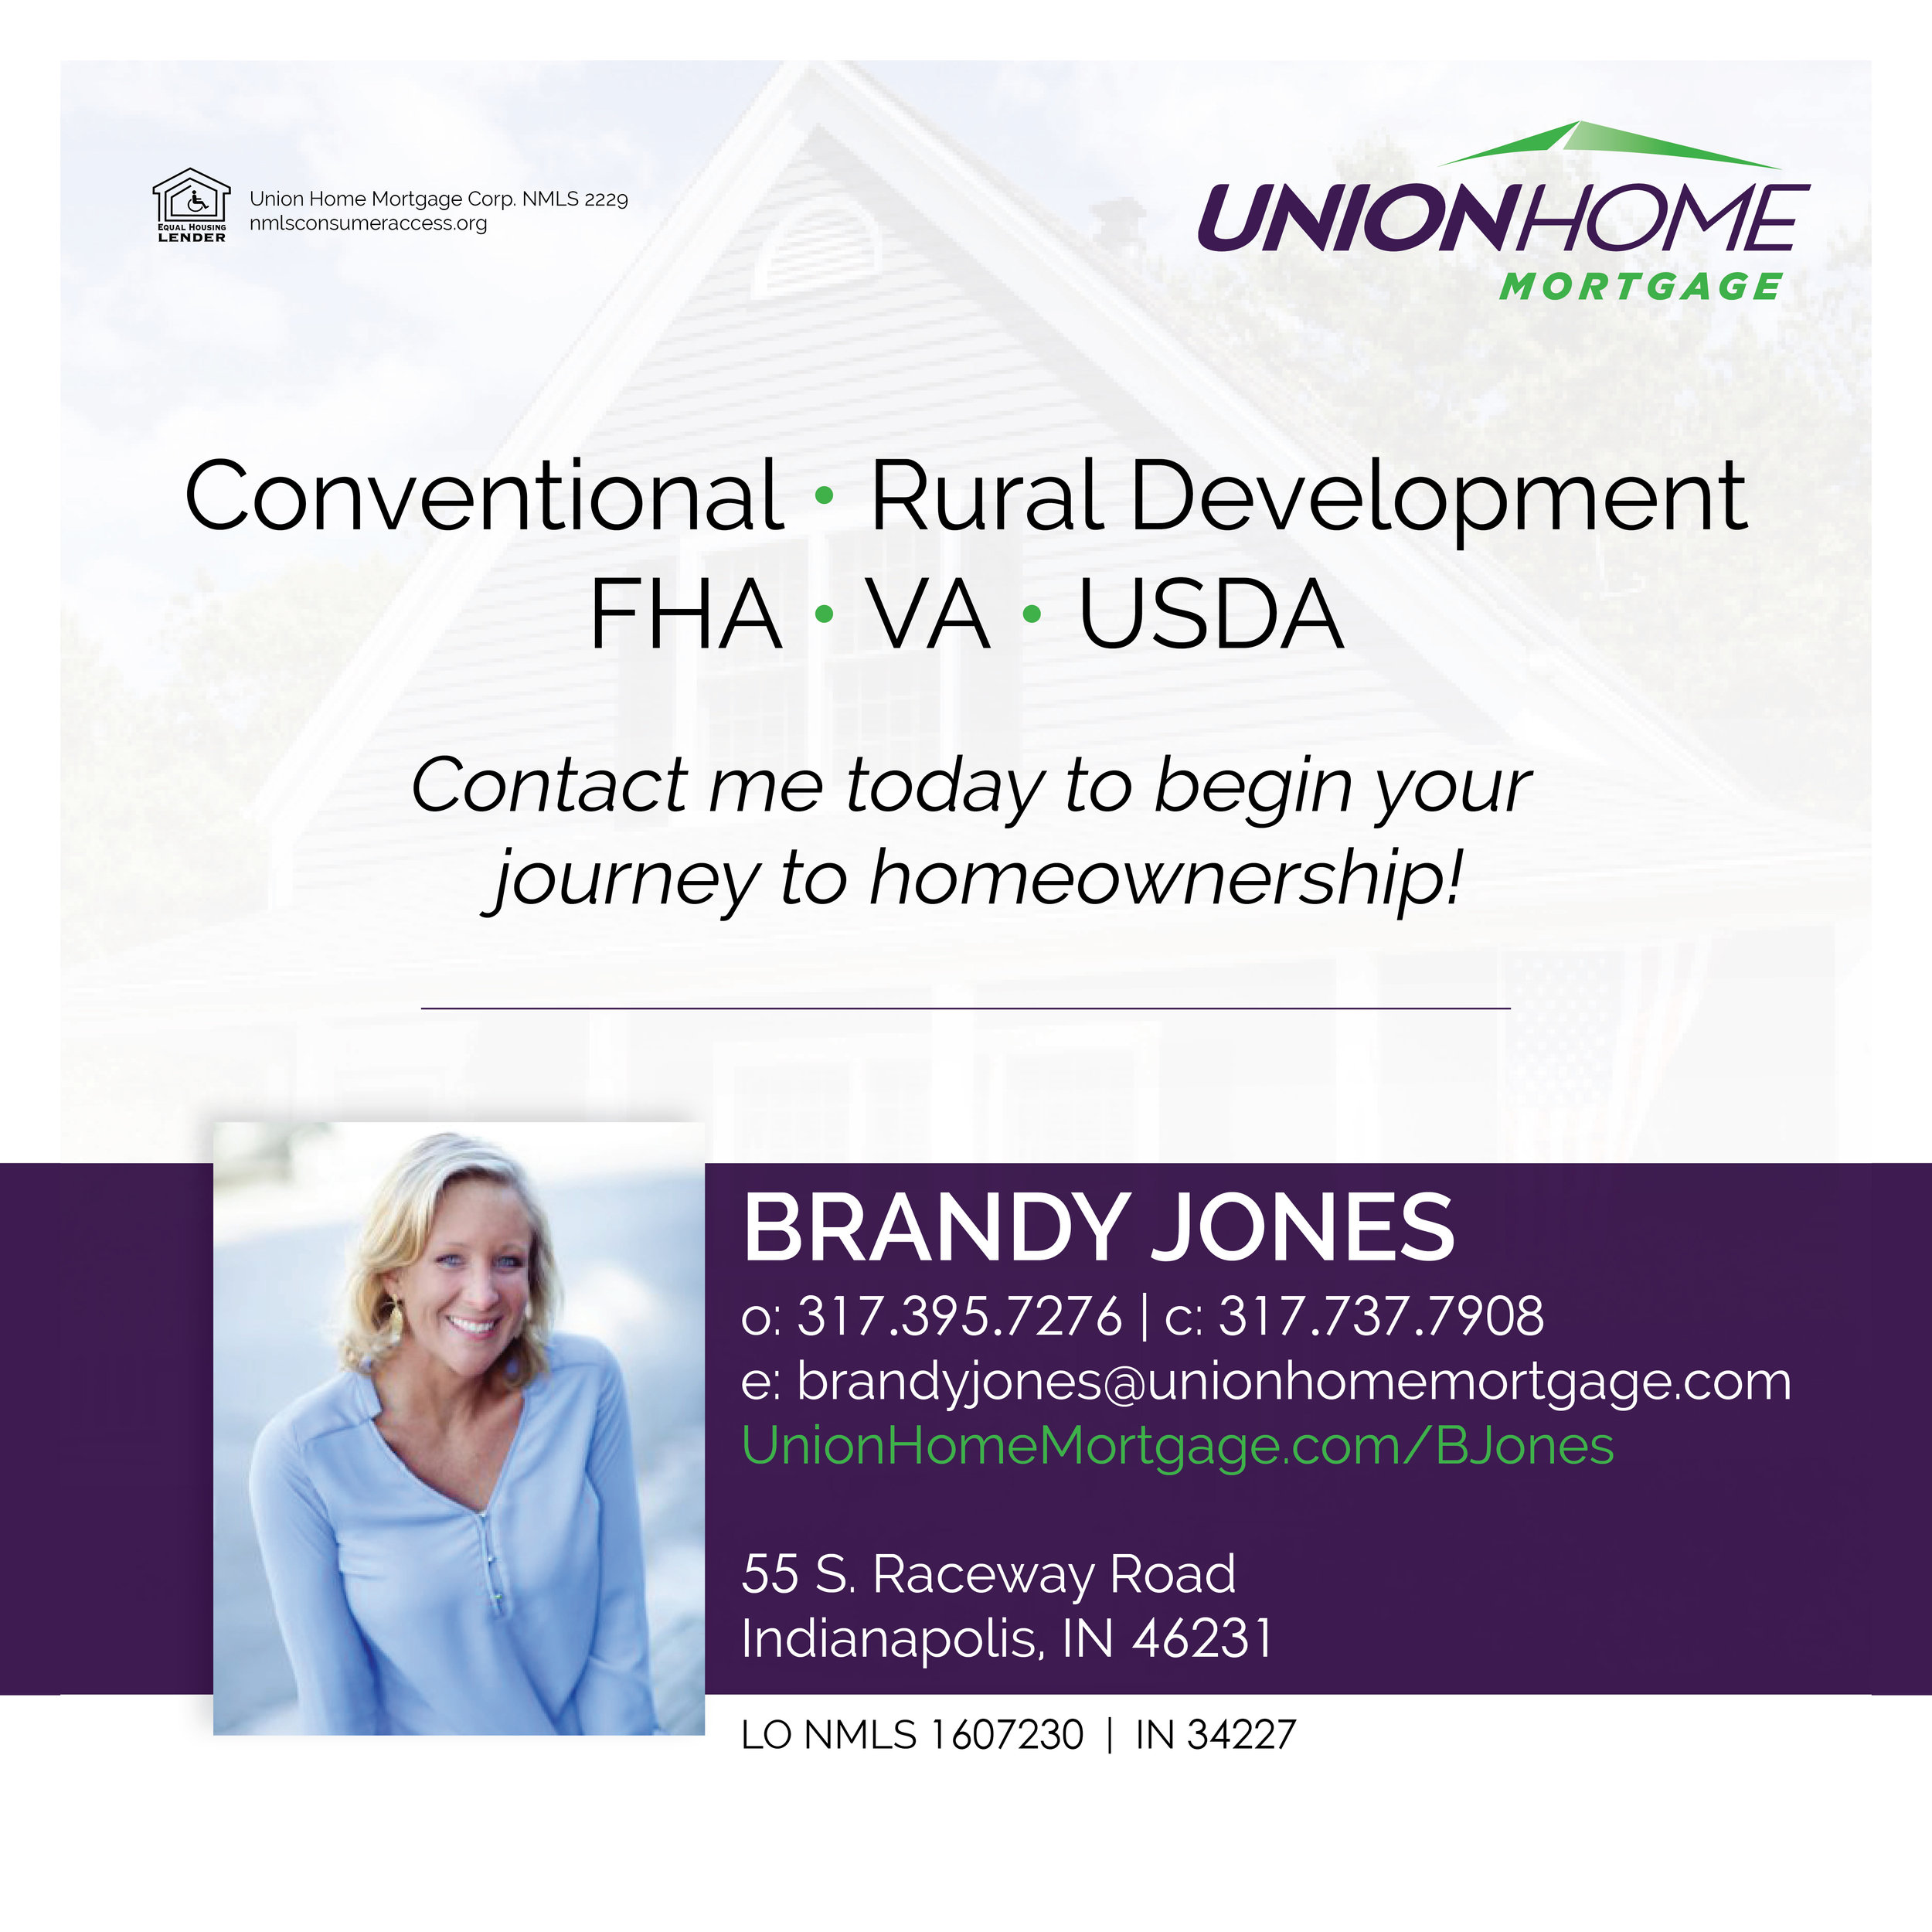 U into homes? - union home. mortgage (w/ brandy) - Click link below.